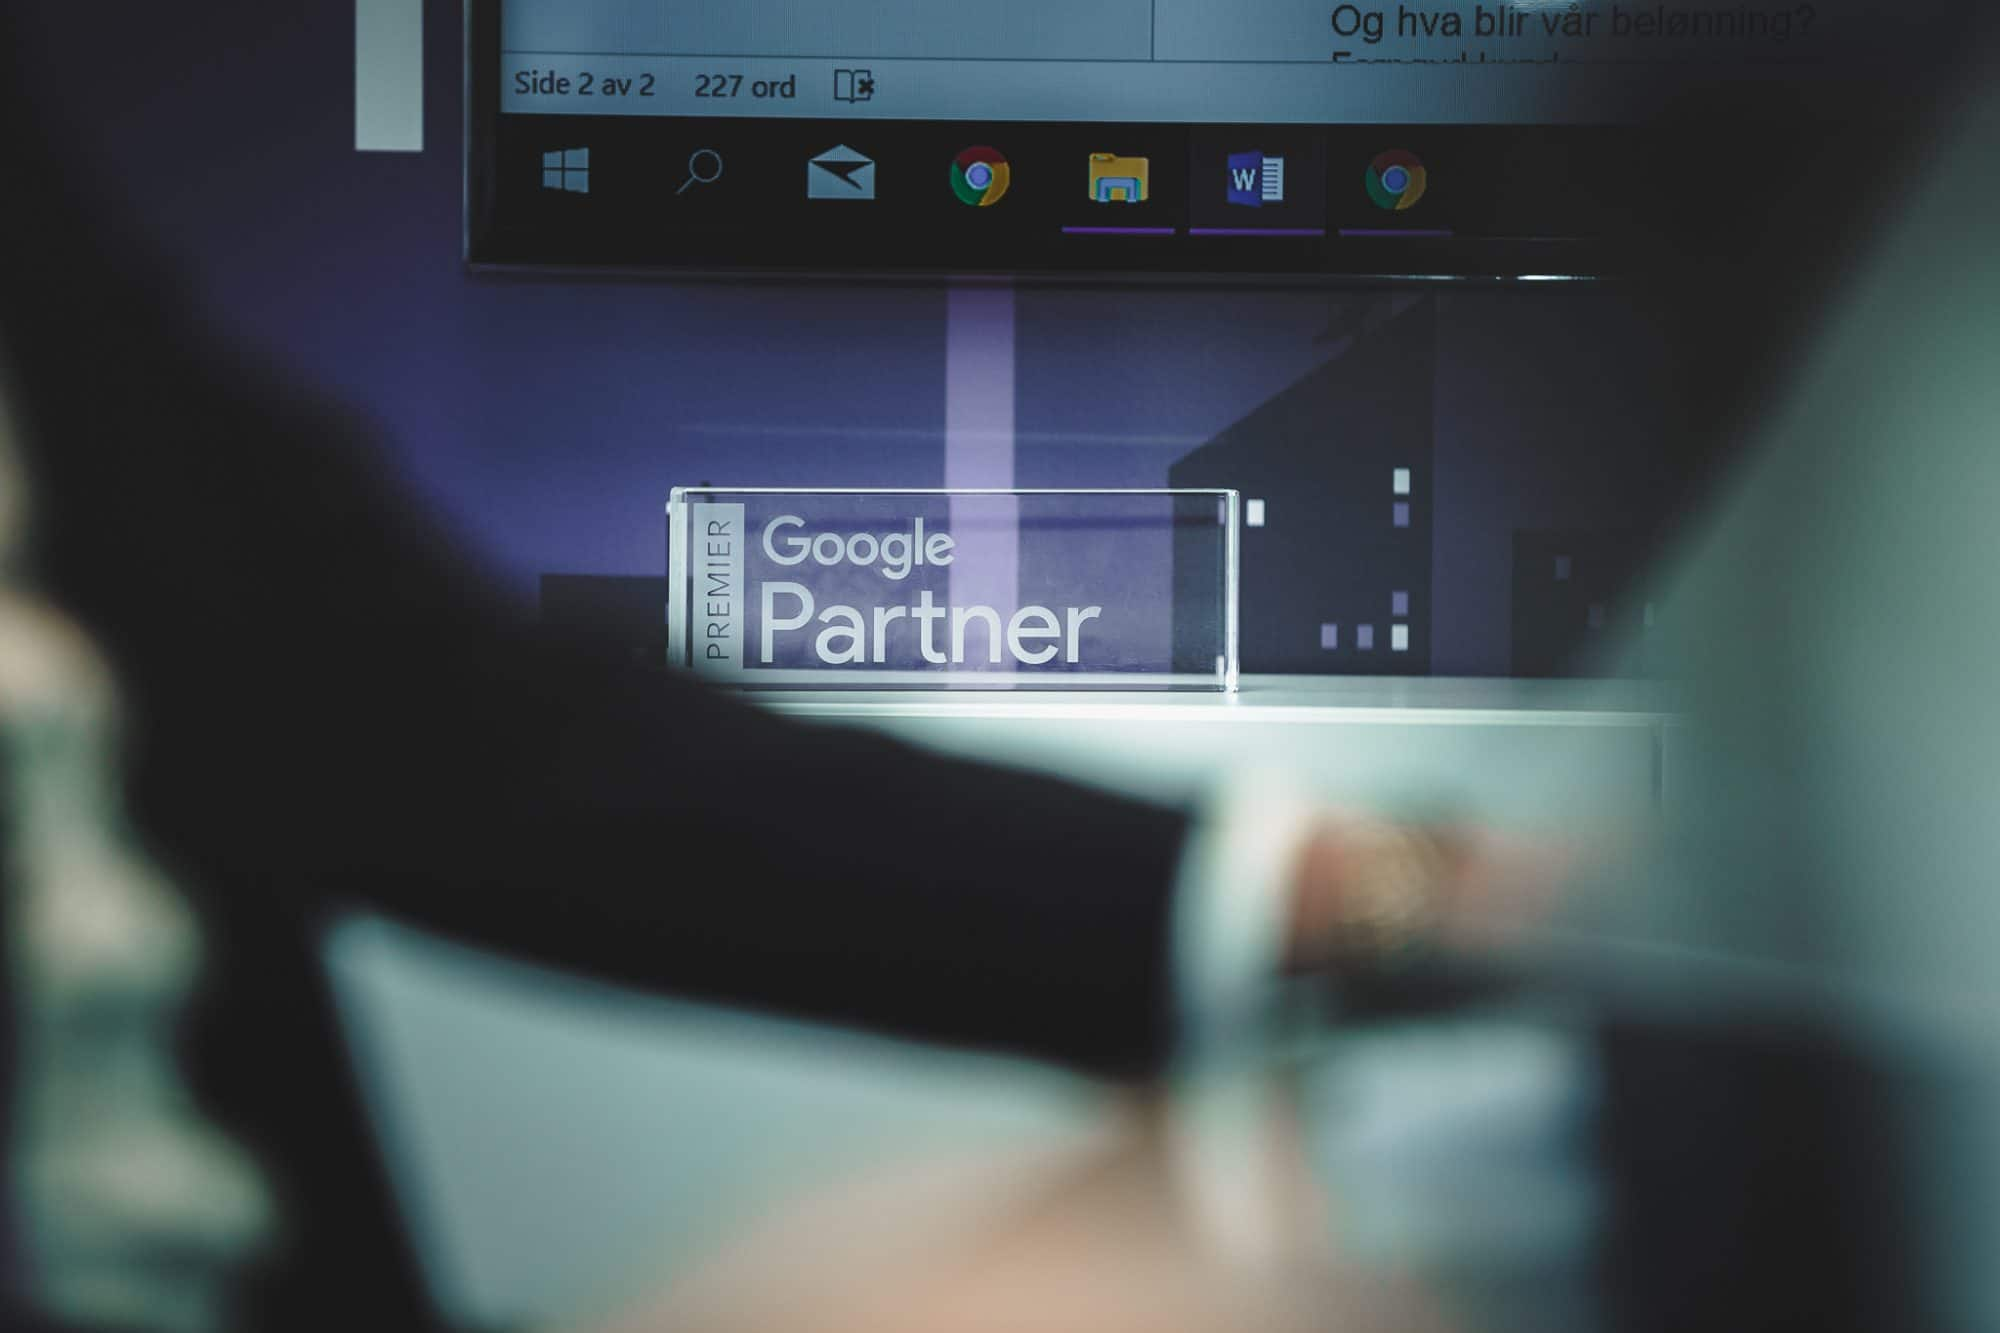 google partner optimal norge